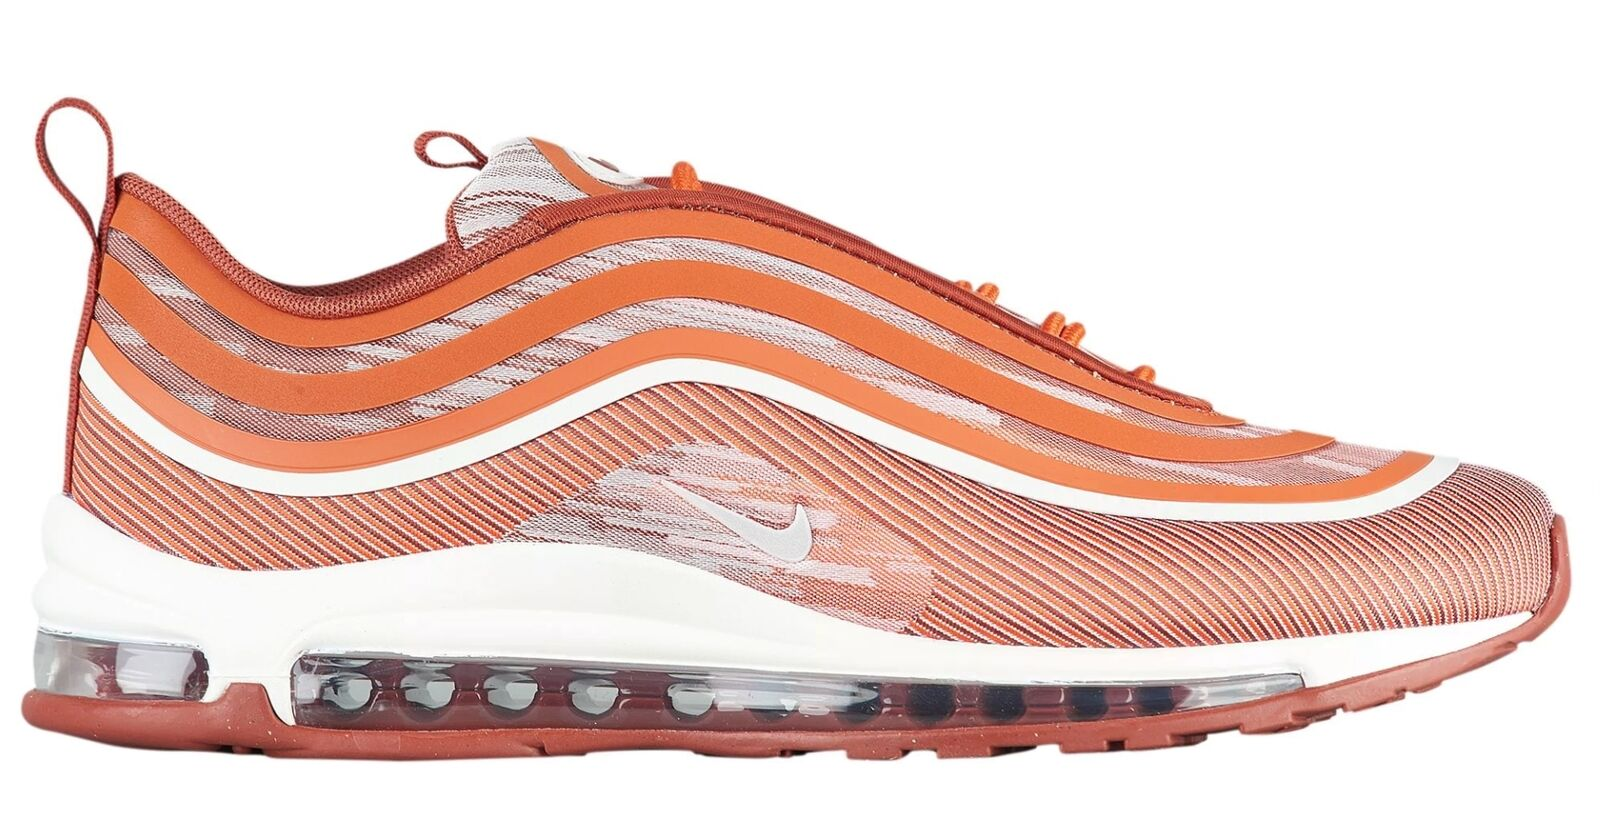 Nike Air Max 97 UL '17 '17 '17 Mens 918356-800 Coral Mars Stone Running shoes Size 8.5 aab12a